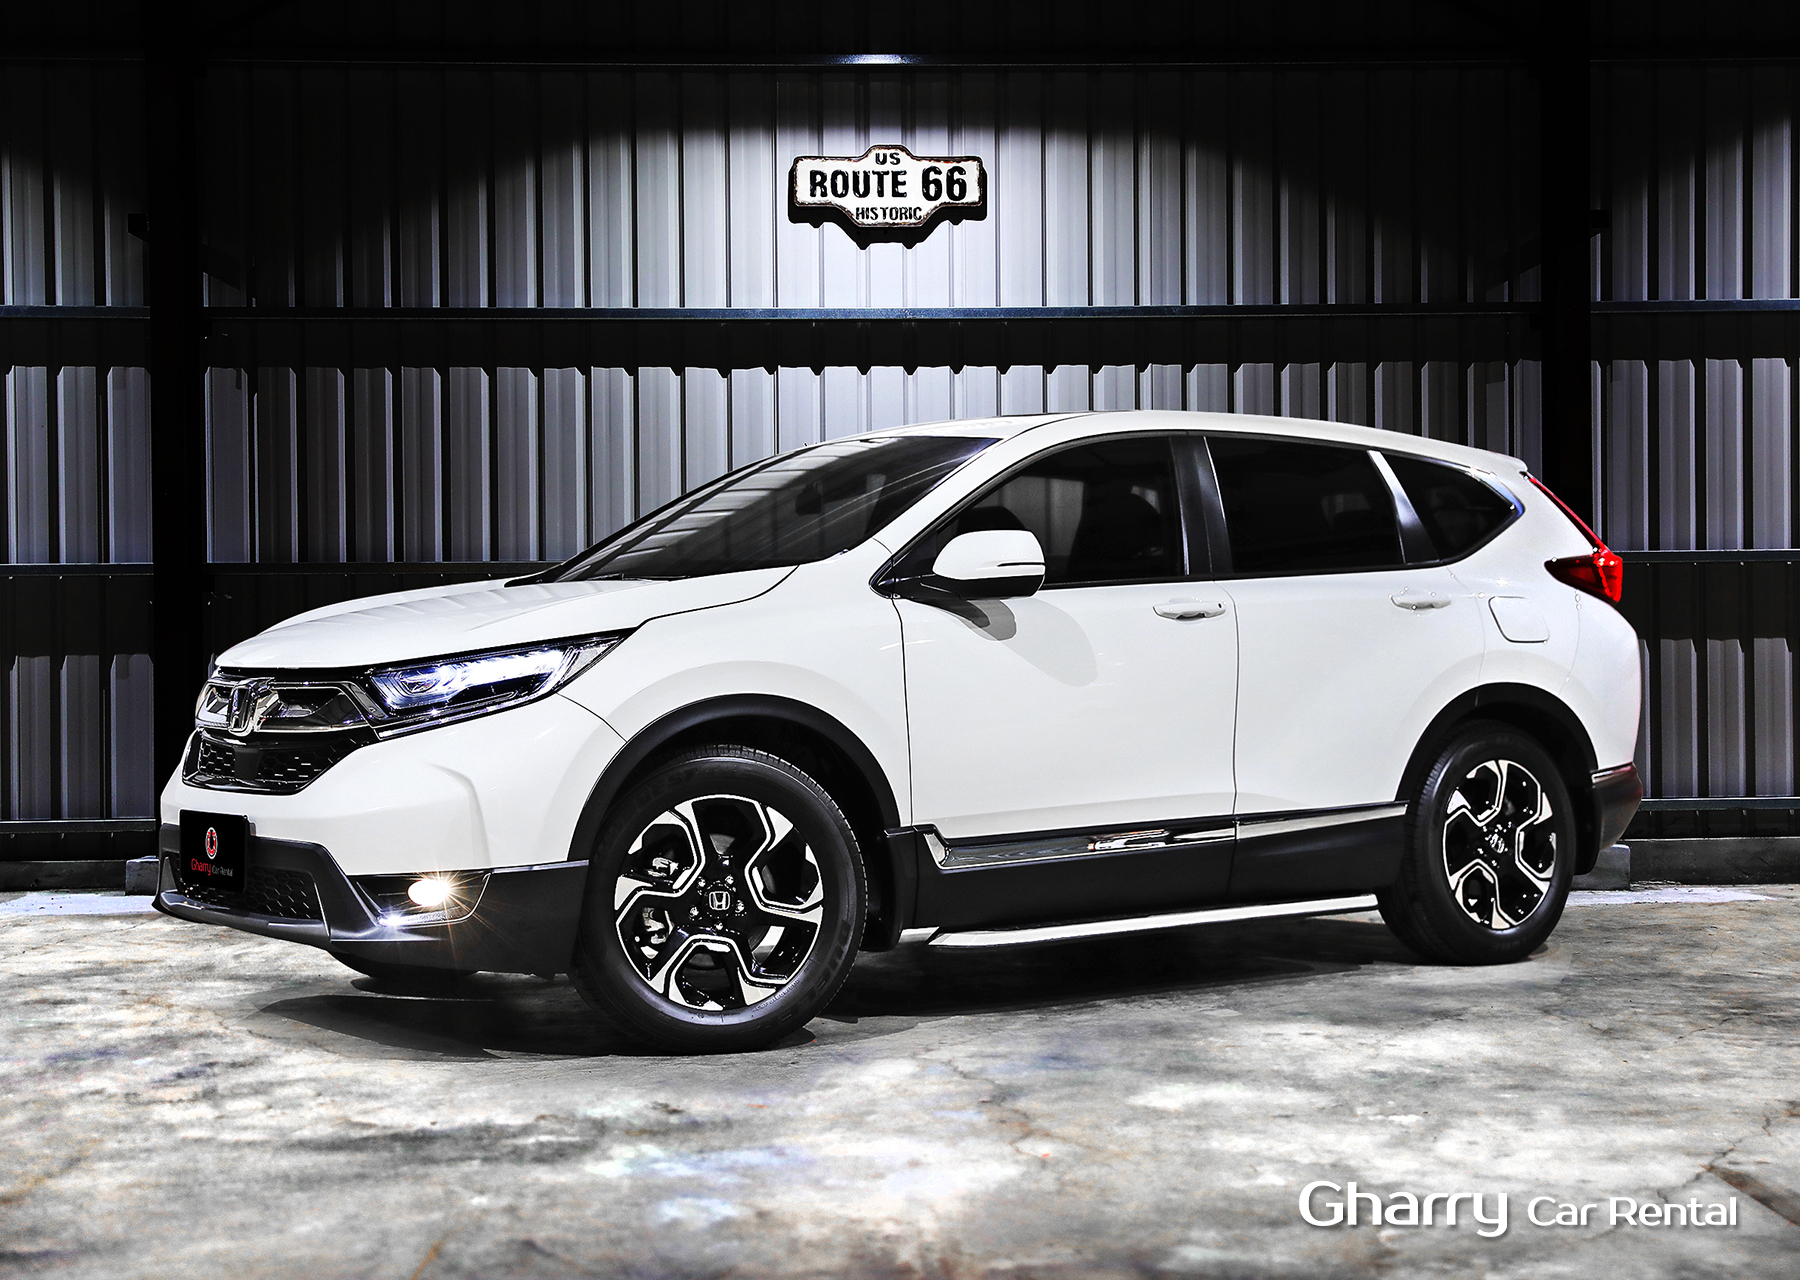 Gharry car HONDA CRV